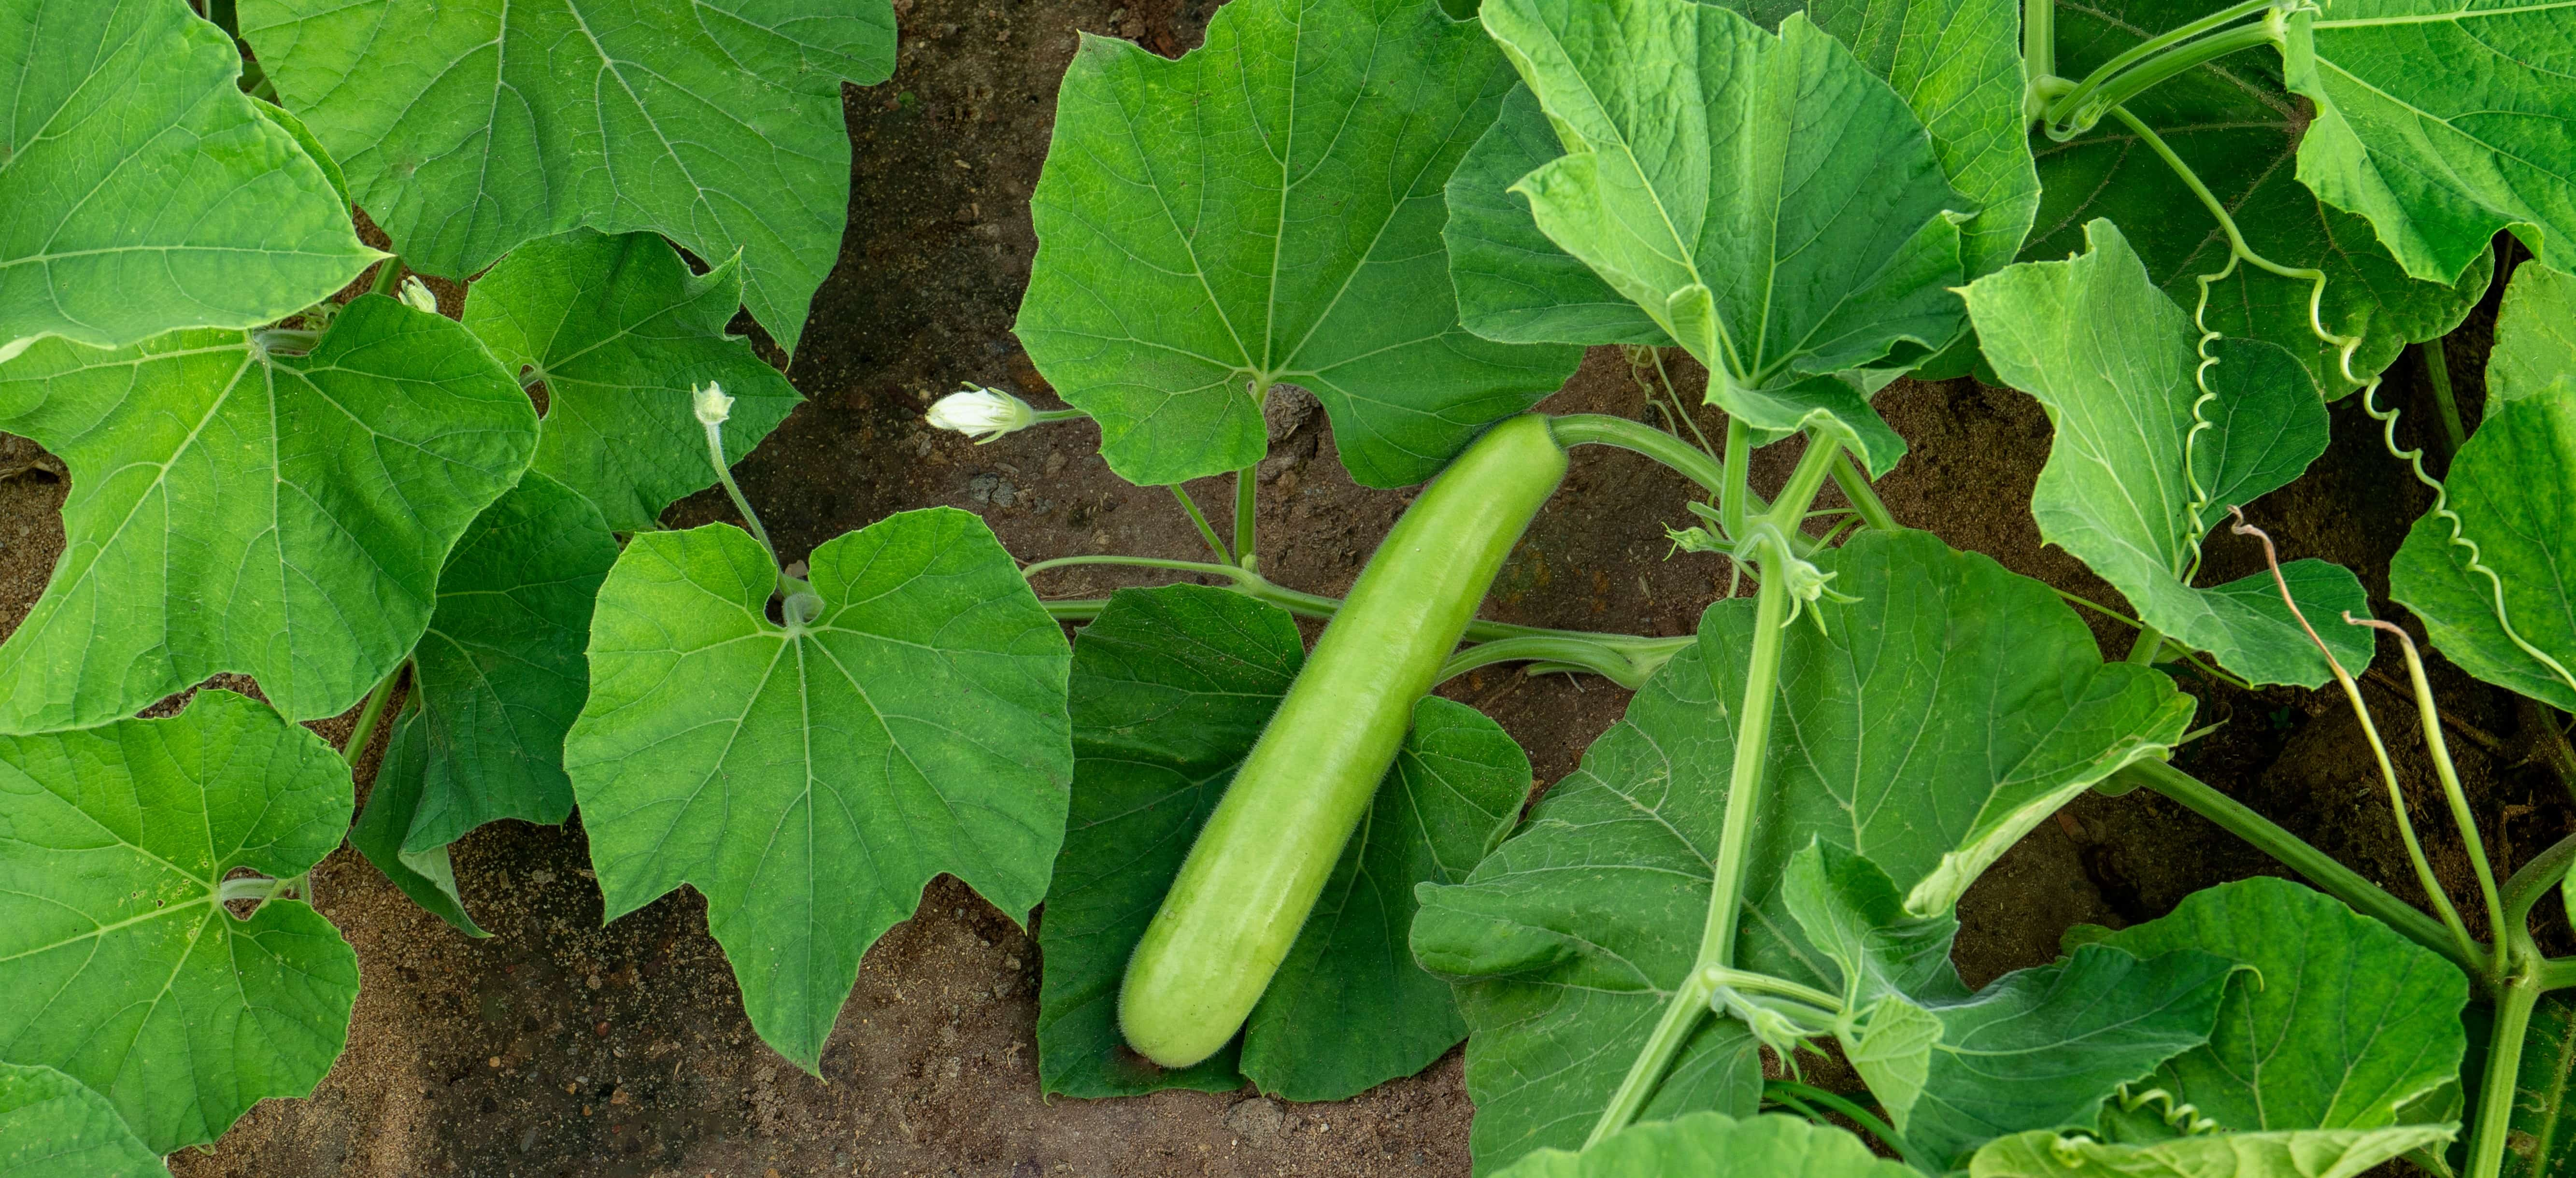 What should be the proper climate for Bottle gourd cultivation?